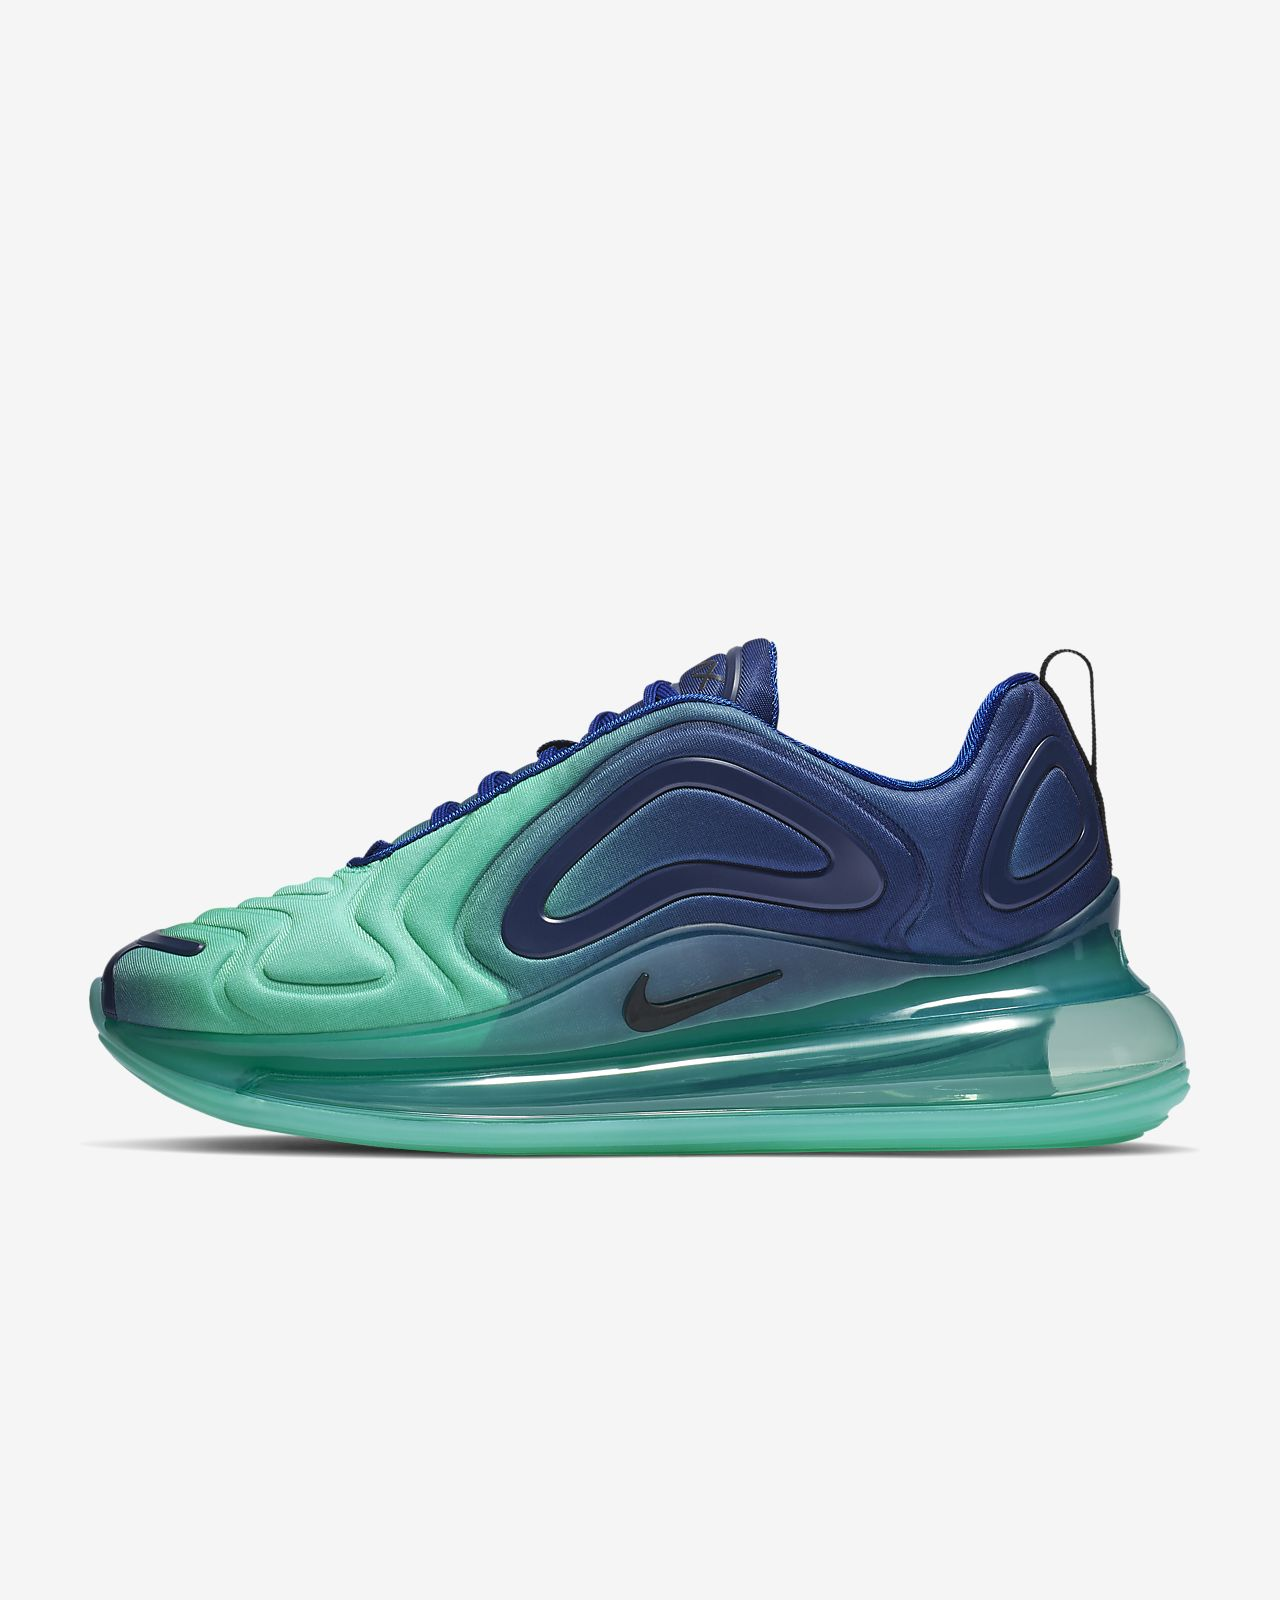 promo code 1d893 7f6aa ... Chaussure Nike Air Max 720 pour Femme